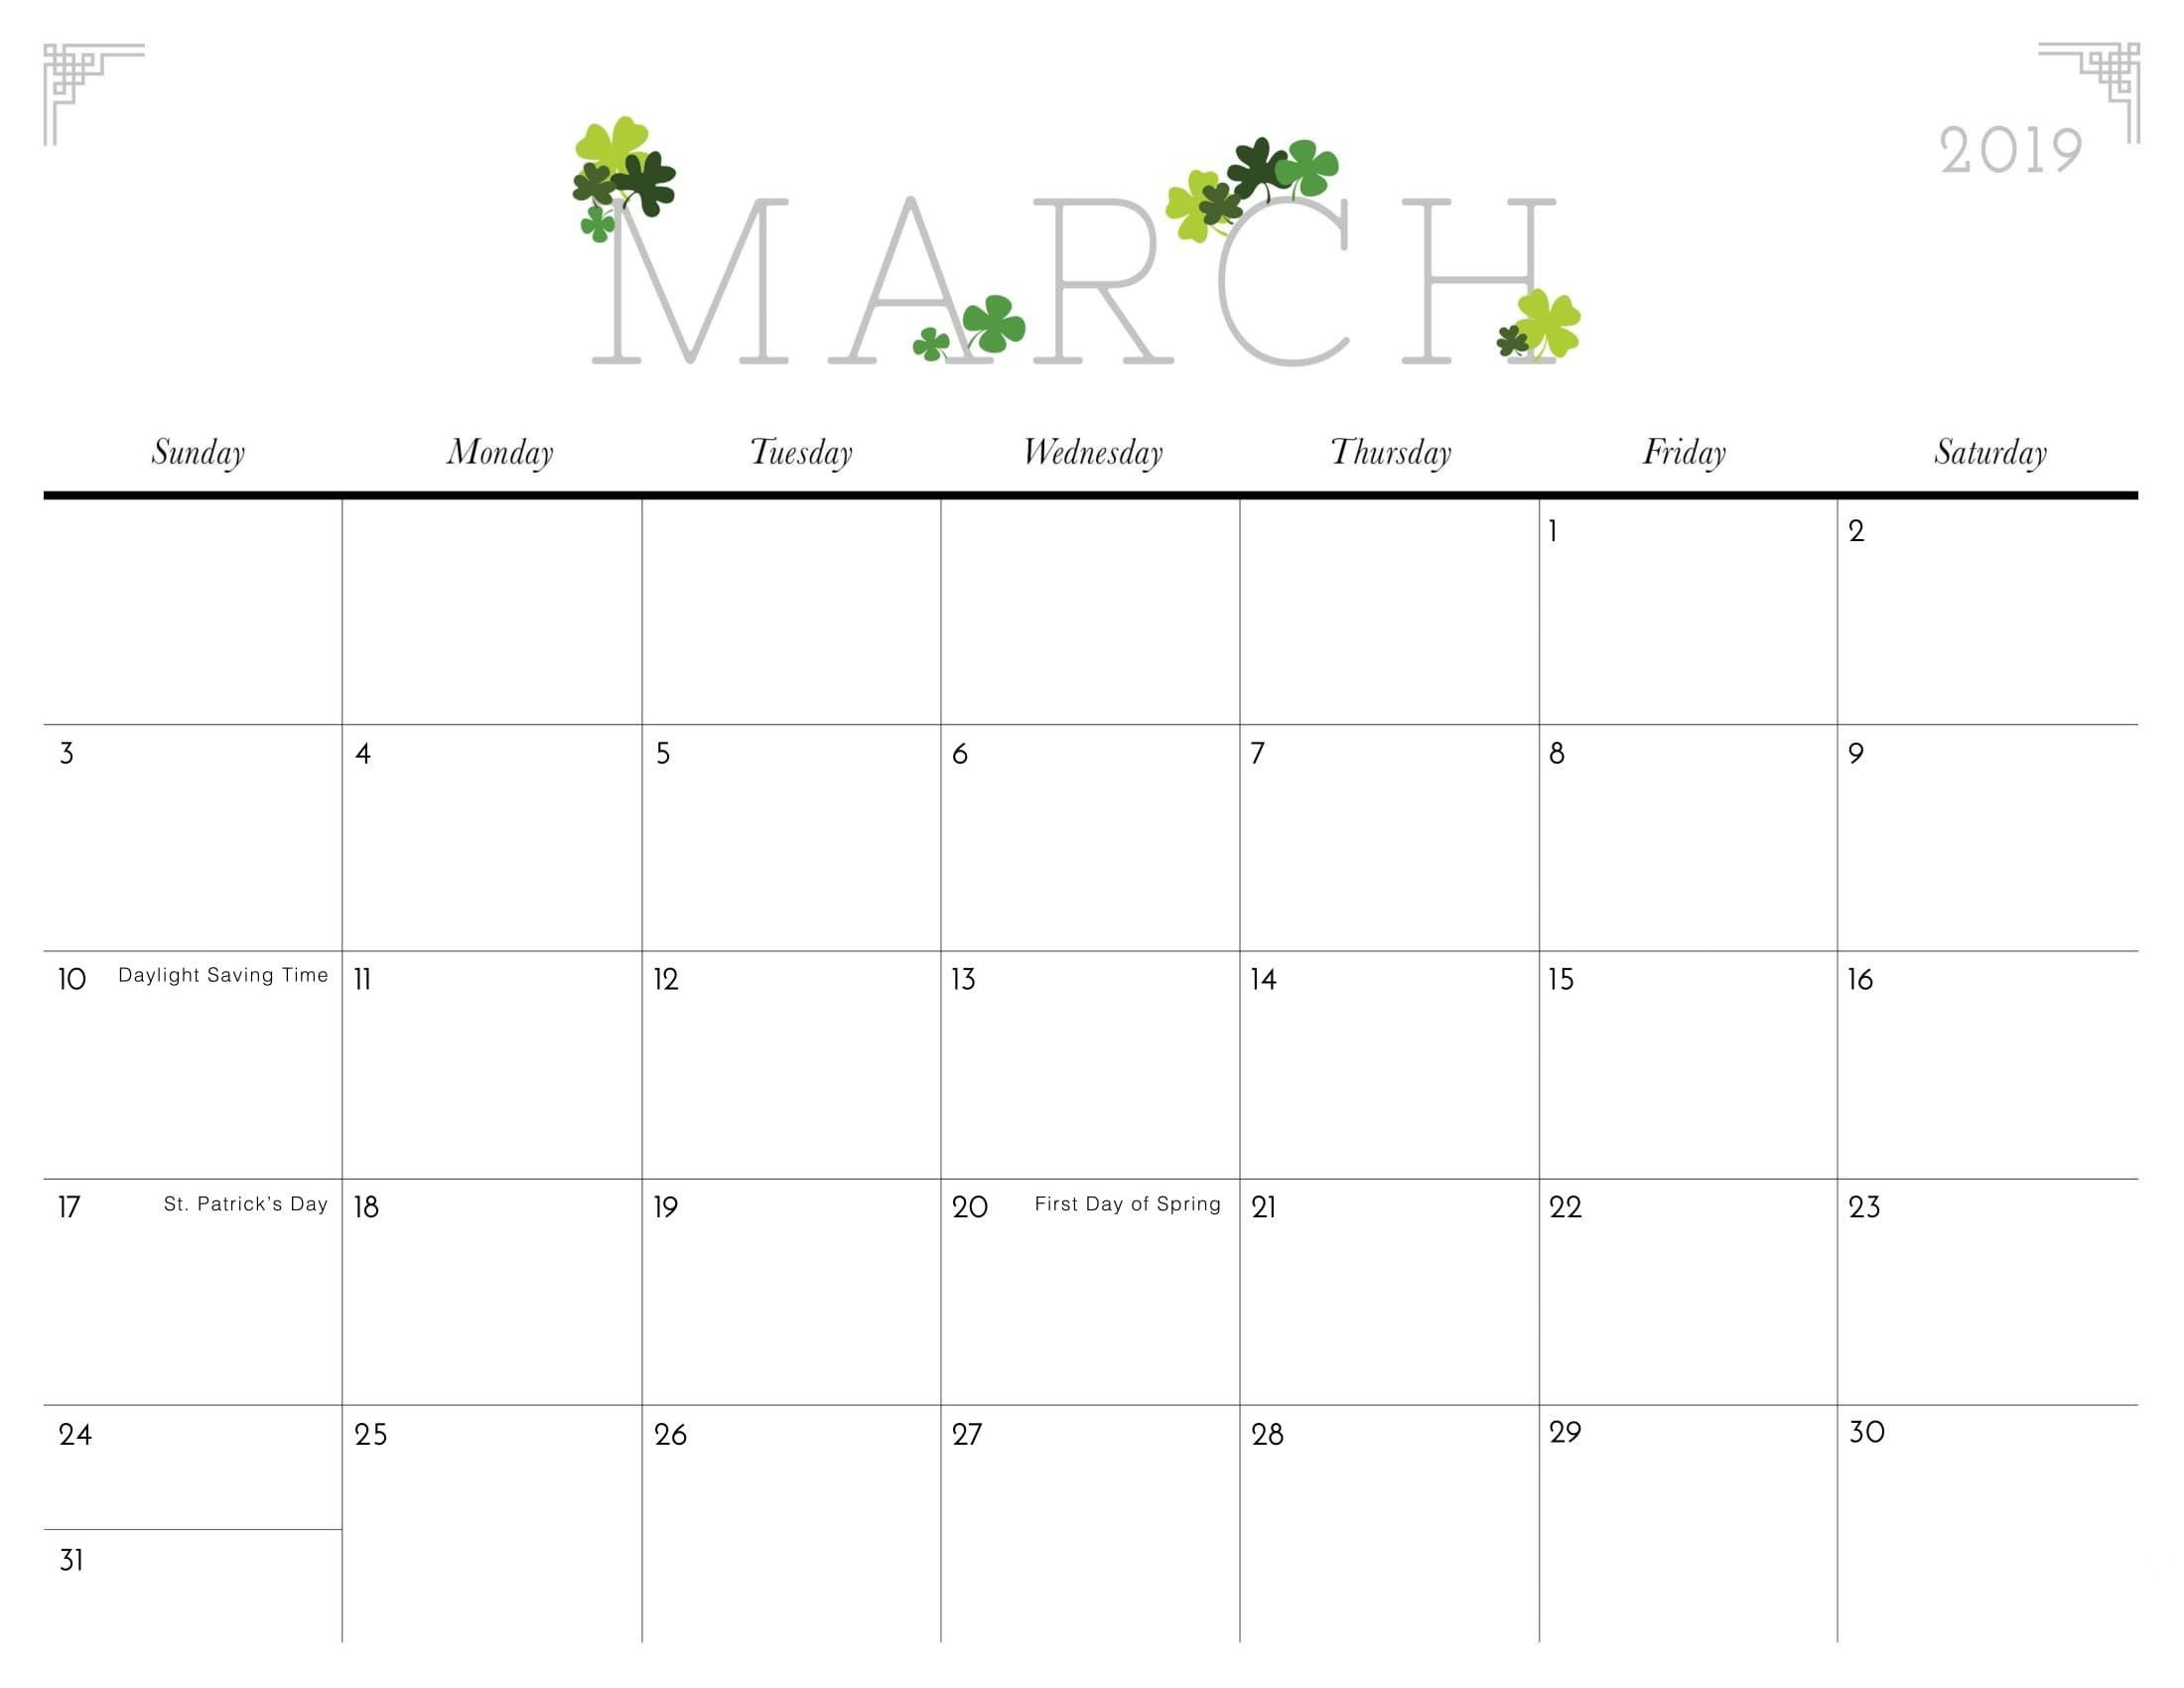 March Calendar Print Out Más Reciente Cute March 2019 Calendar Template Of March Calendar Print Out Más Populares Training Calendar Template Awesome Spreadsheet Templates Password